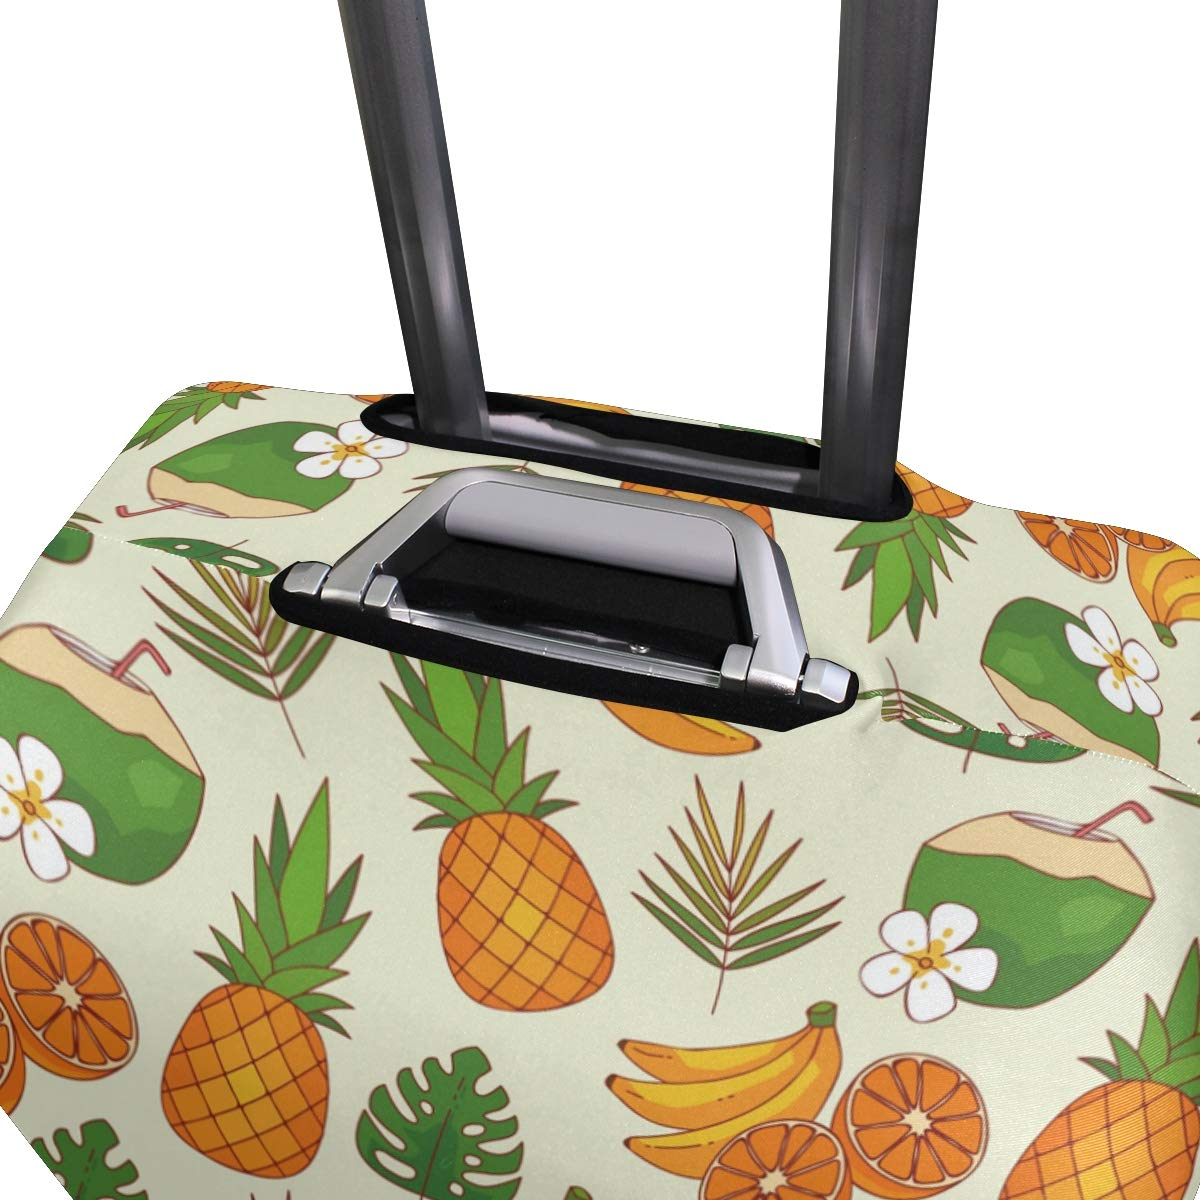 Baggage Covers Tropical Pattern Pineapple Banana Washable Protective Case